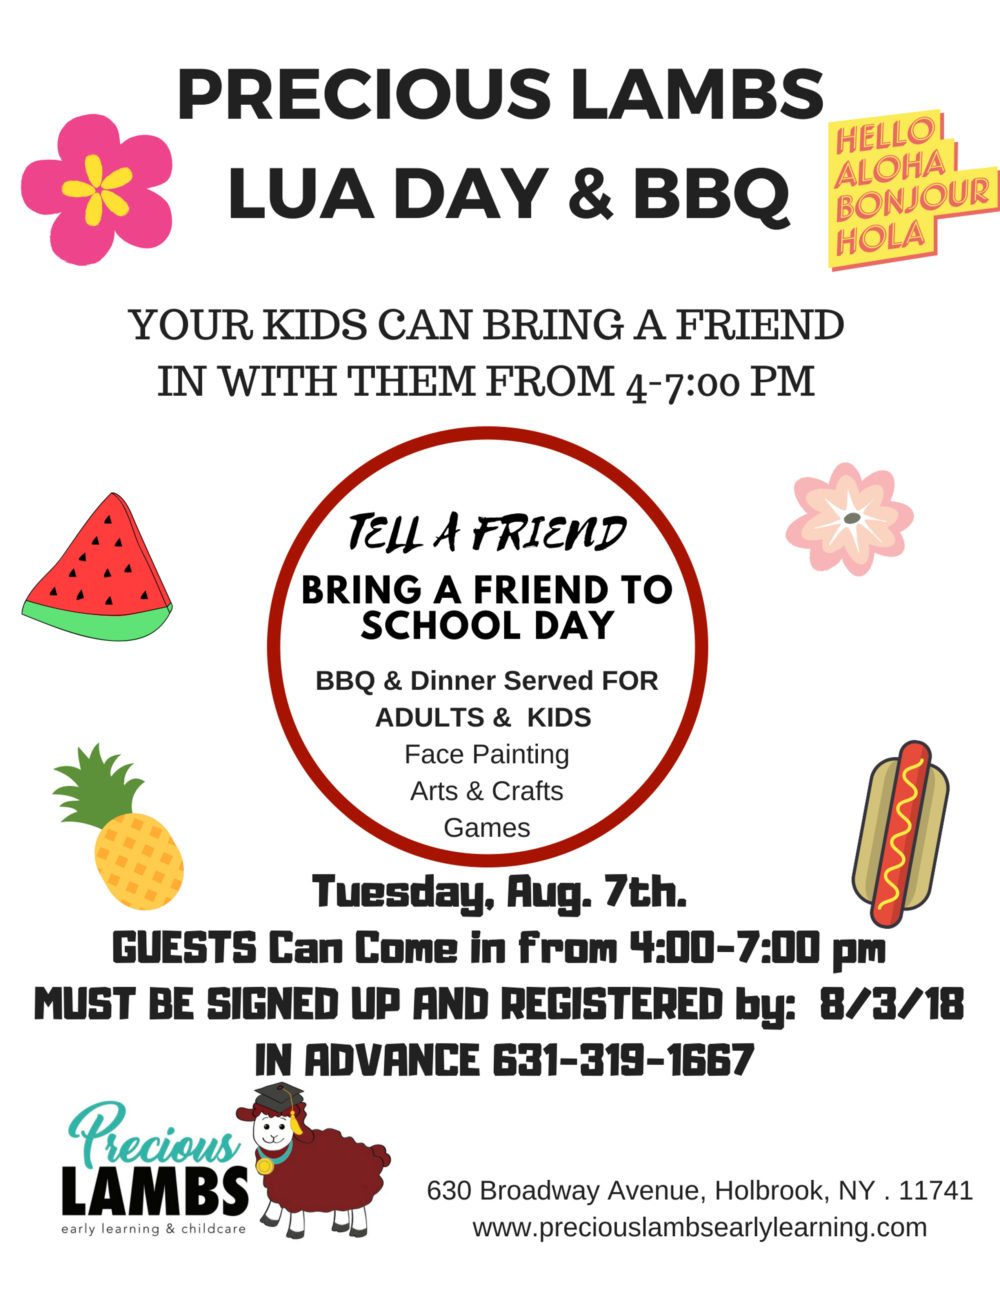 Text image about Lua day and bbq at a Preschool & Daycare Serving Greenville, AL